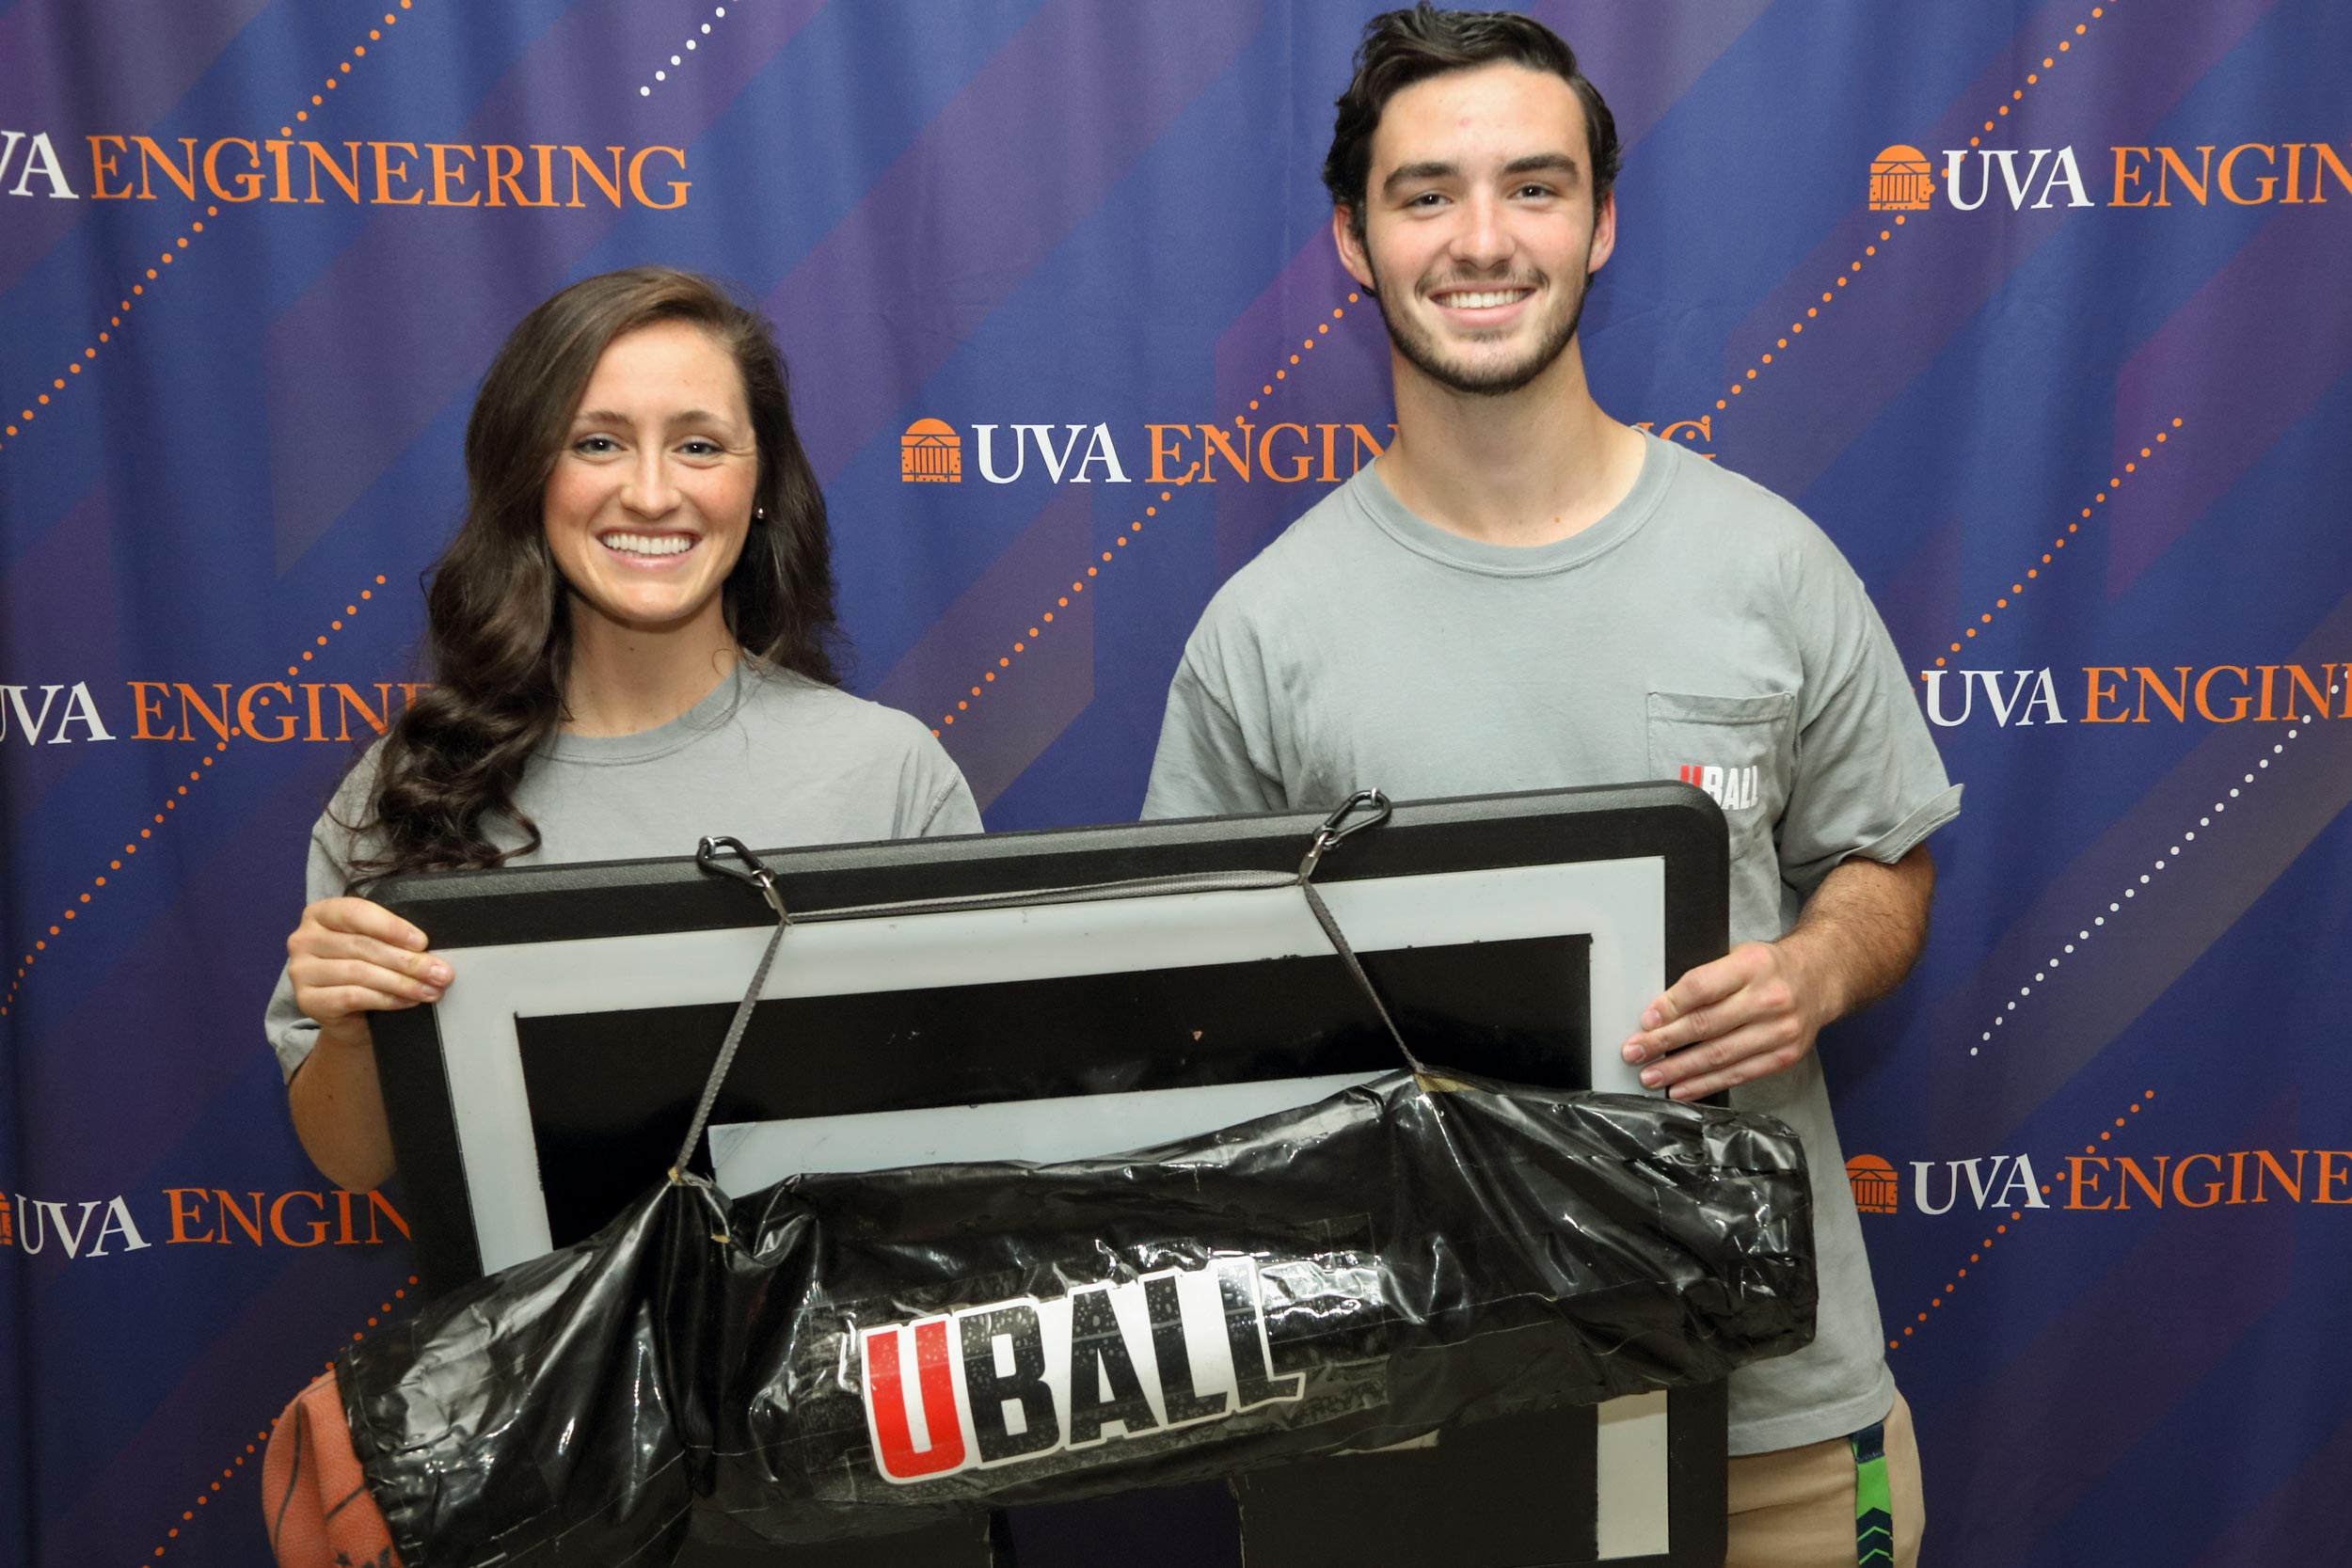 The sister-and-brother team of Molly and Tim Shields show off their creation, Uball, at Monday's Pike competition.